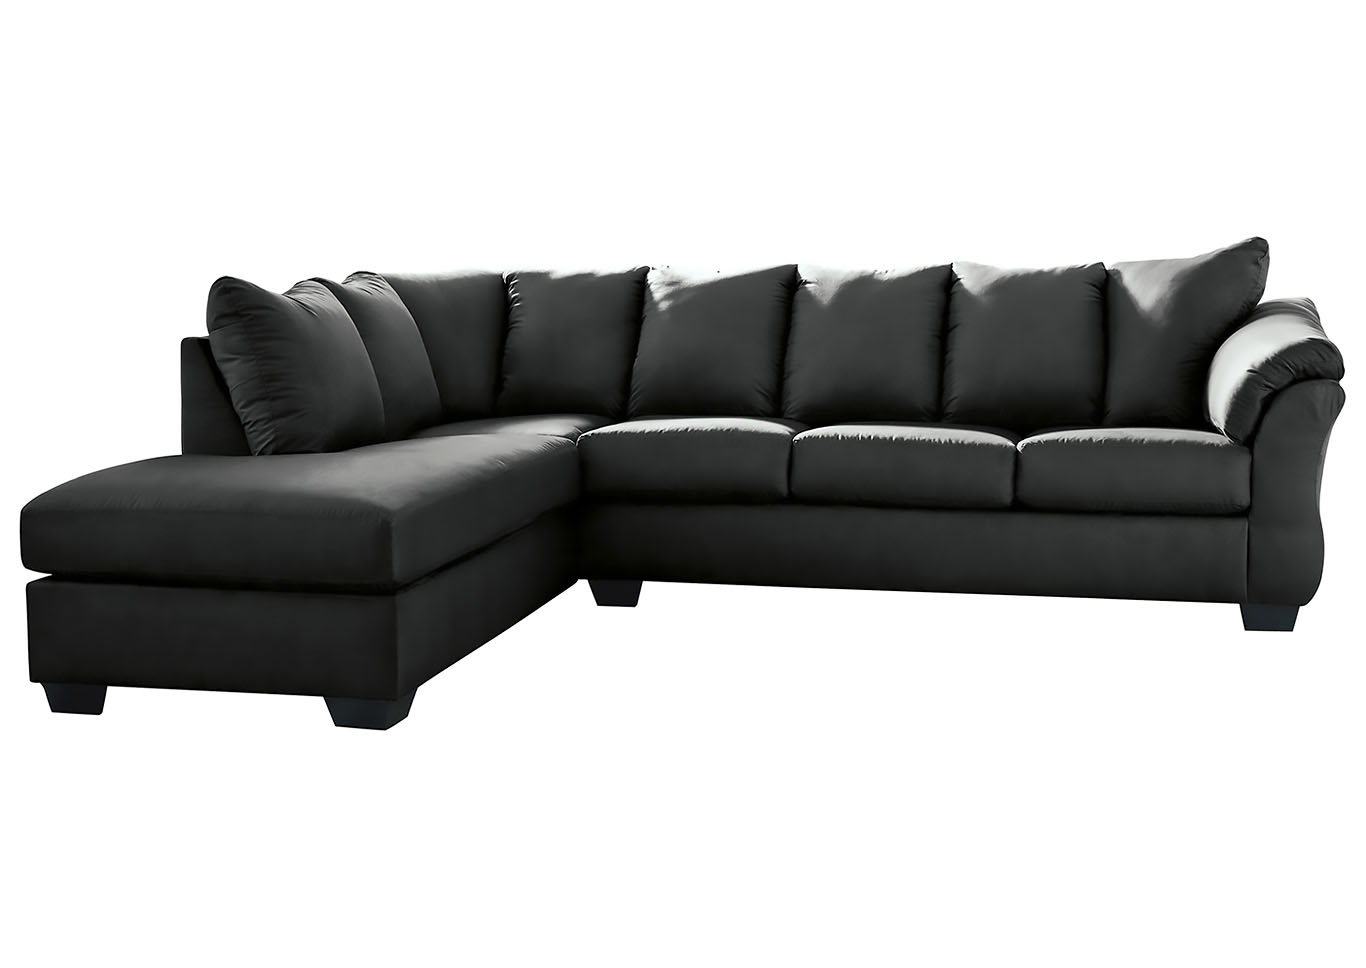 Darcy Black LAF Chaise Sectional,Signature Design By Ashley